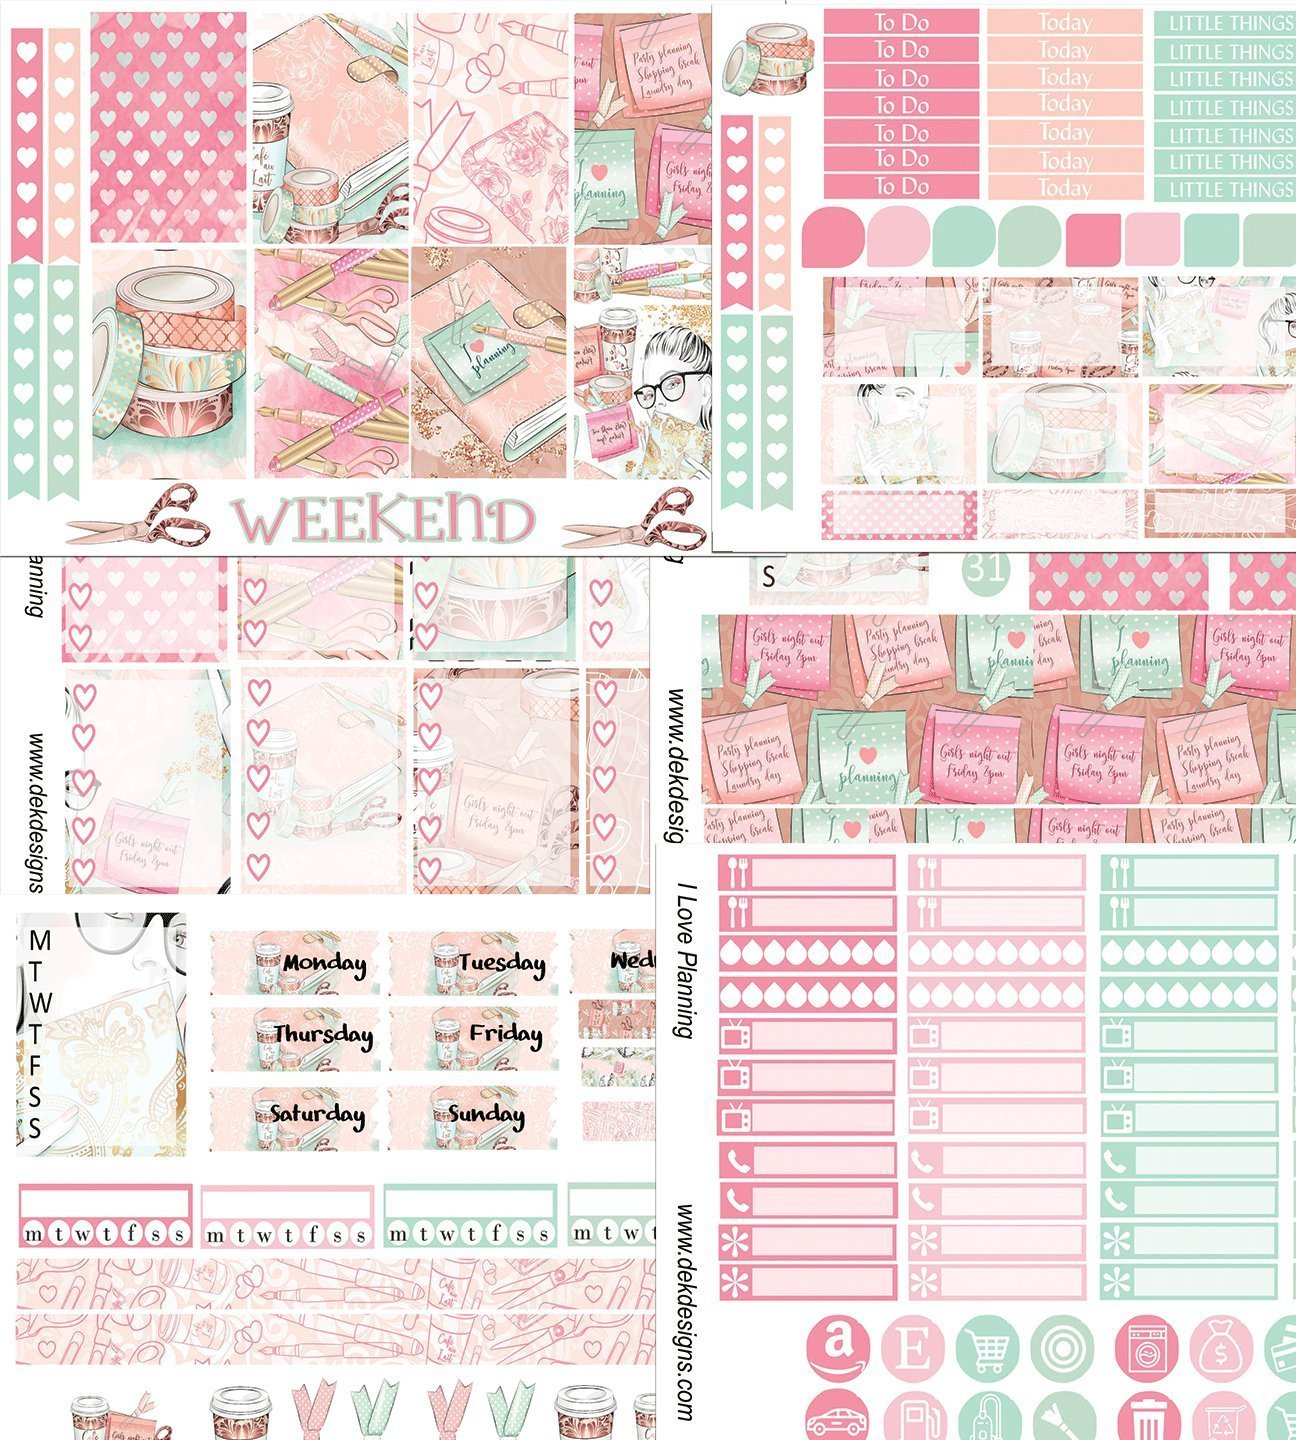 Planner Stickers Planning a Life She Loves-Weekly kit-Erin Condren FREE Foiled Header Stickers K-18-0109